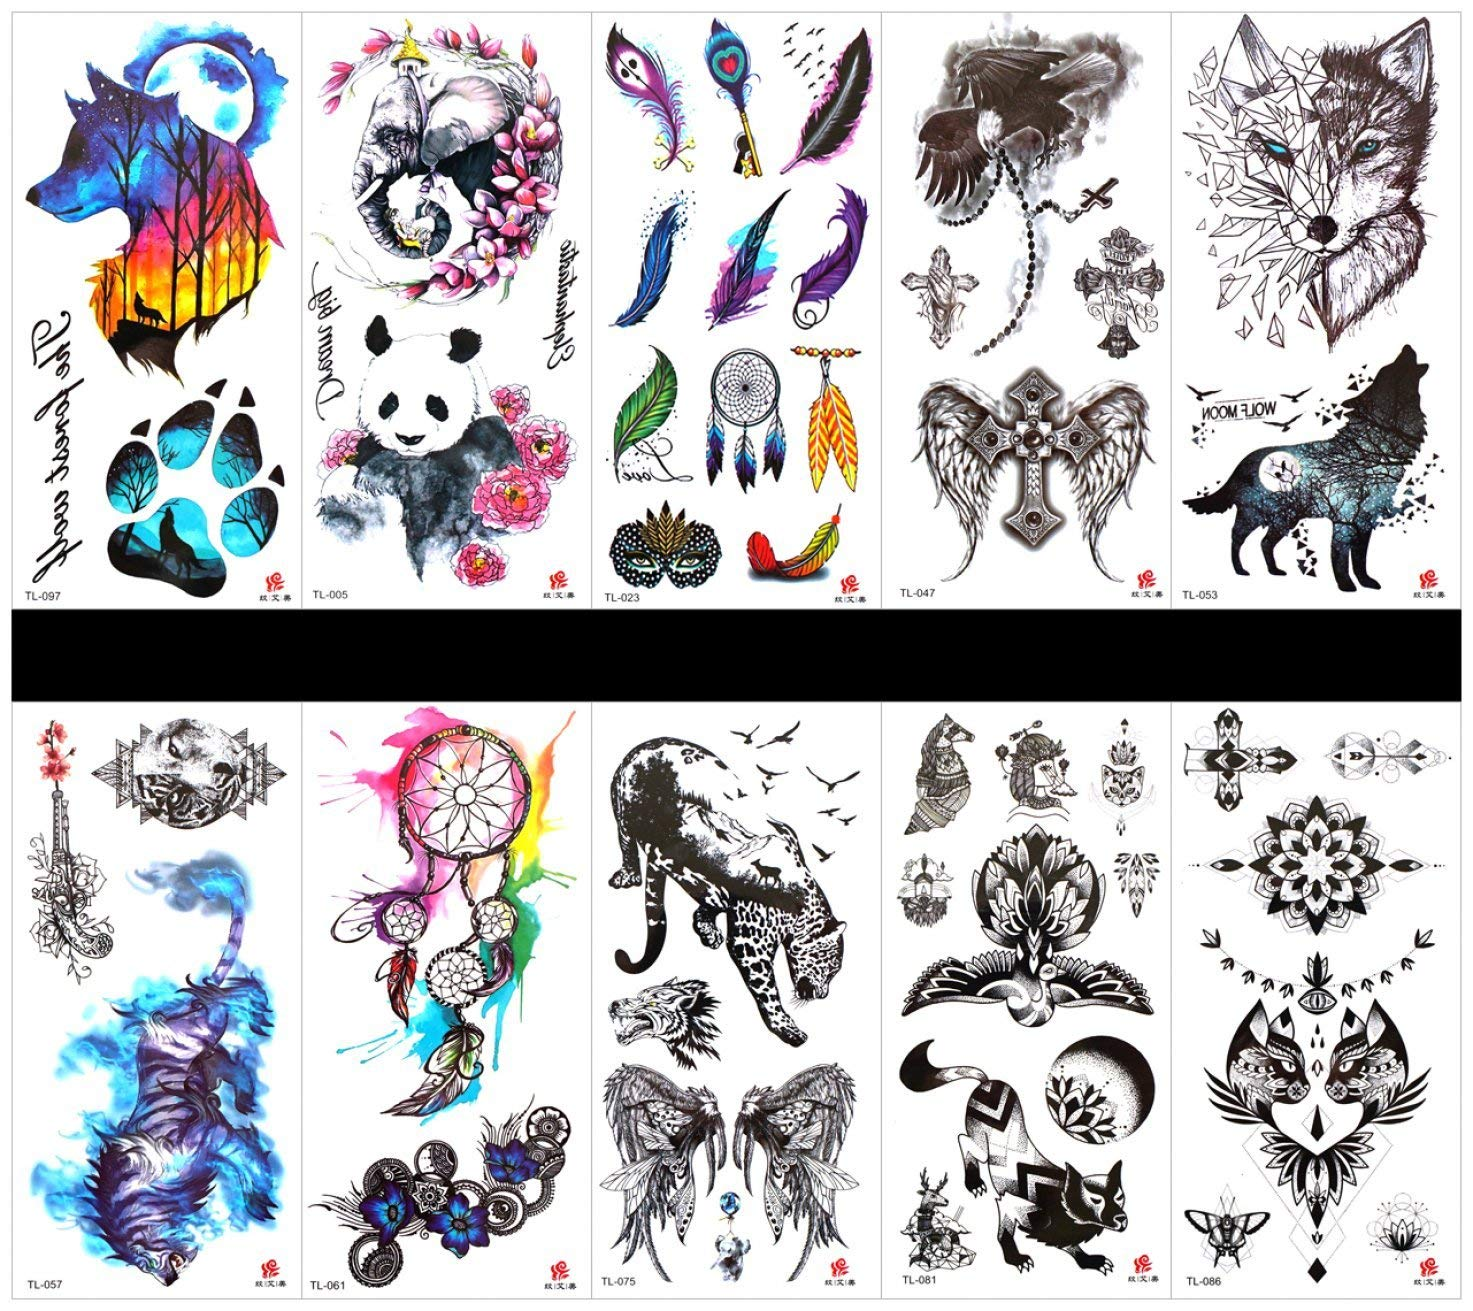 69552b3dbb2ba Get Quotations · SPESTYLE 10pcs tattoo wolf tattoos waterproof and non  toxic real fake tattoos in 1 packages,